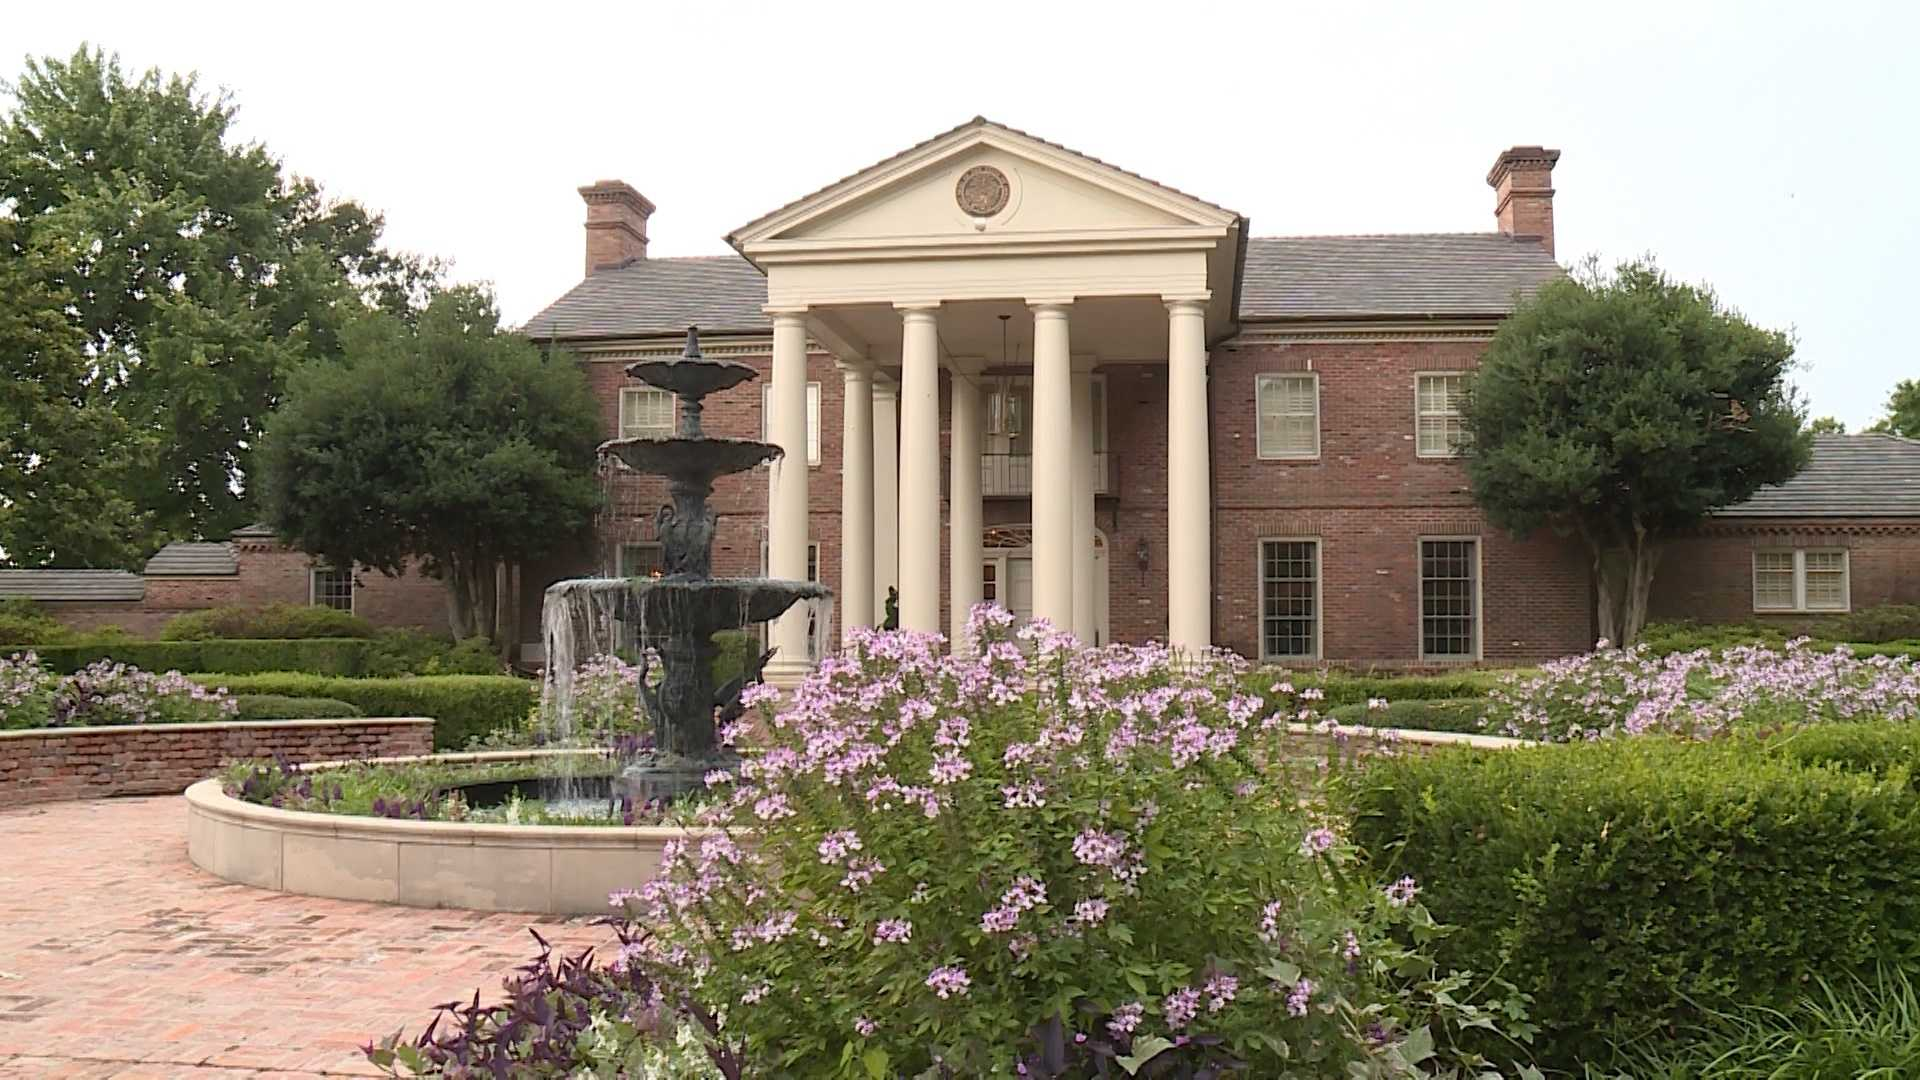 The Arkansas Governor's Mansion in Little Rock